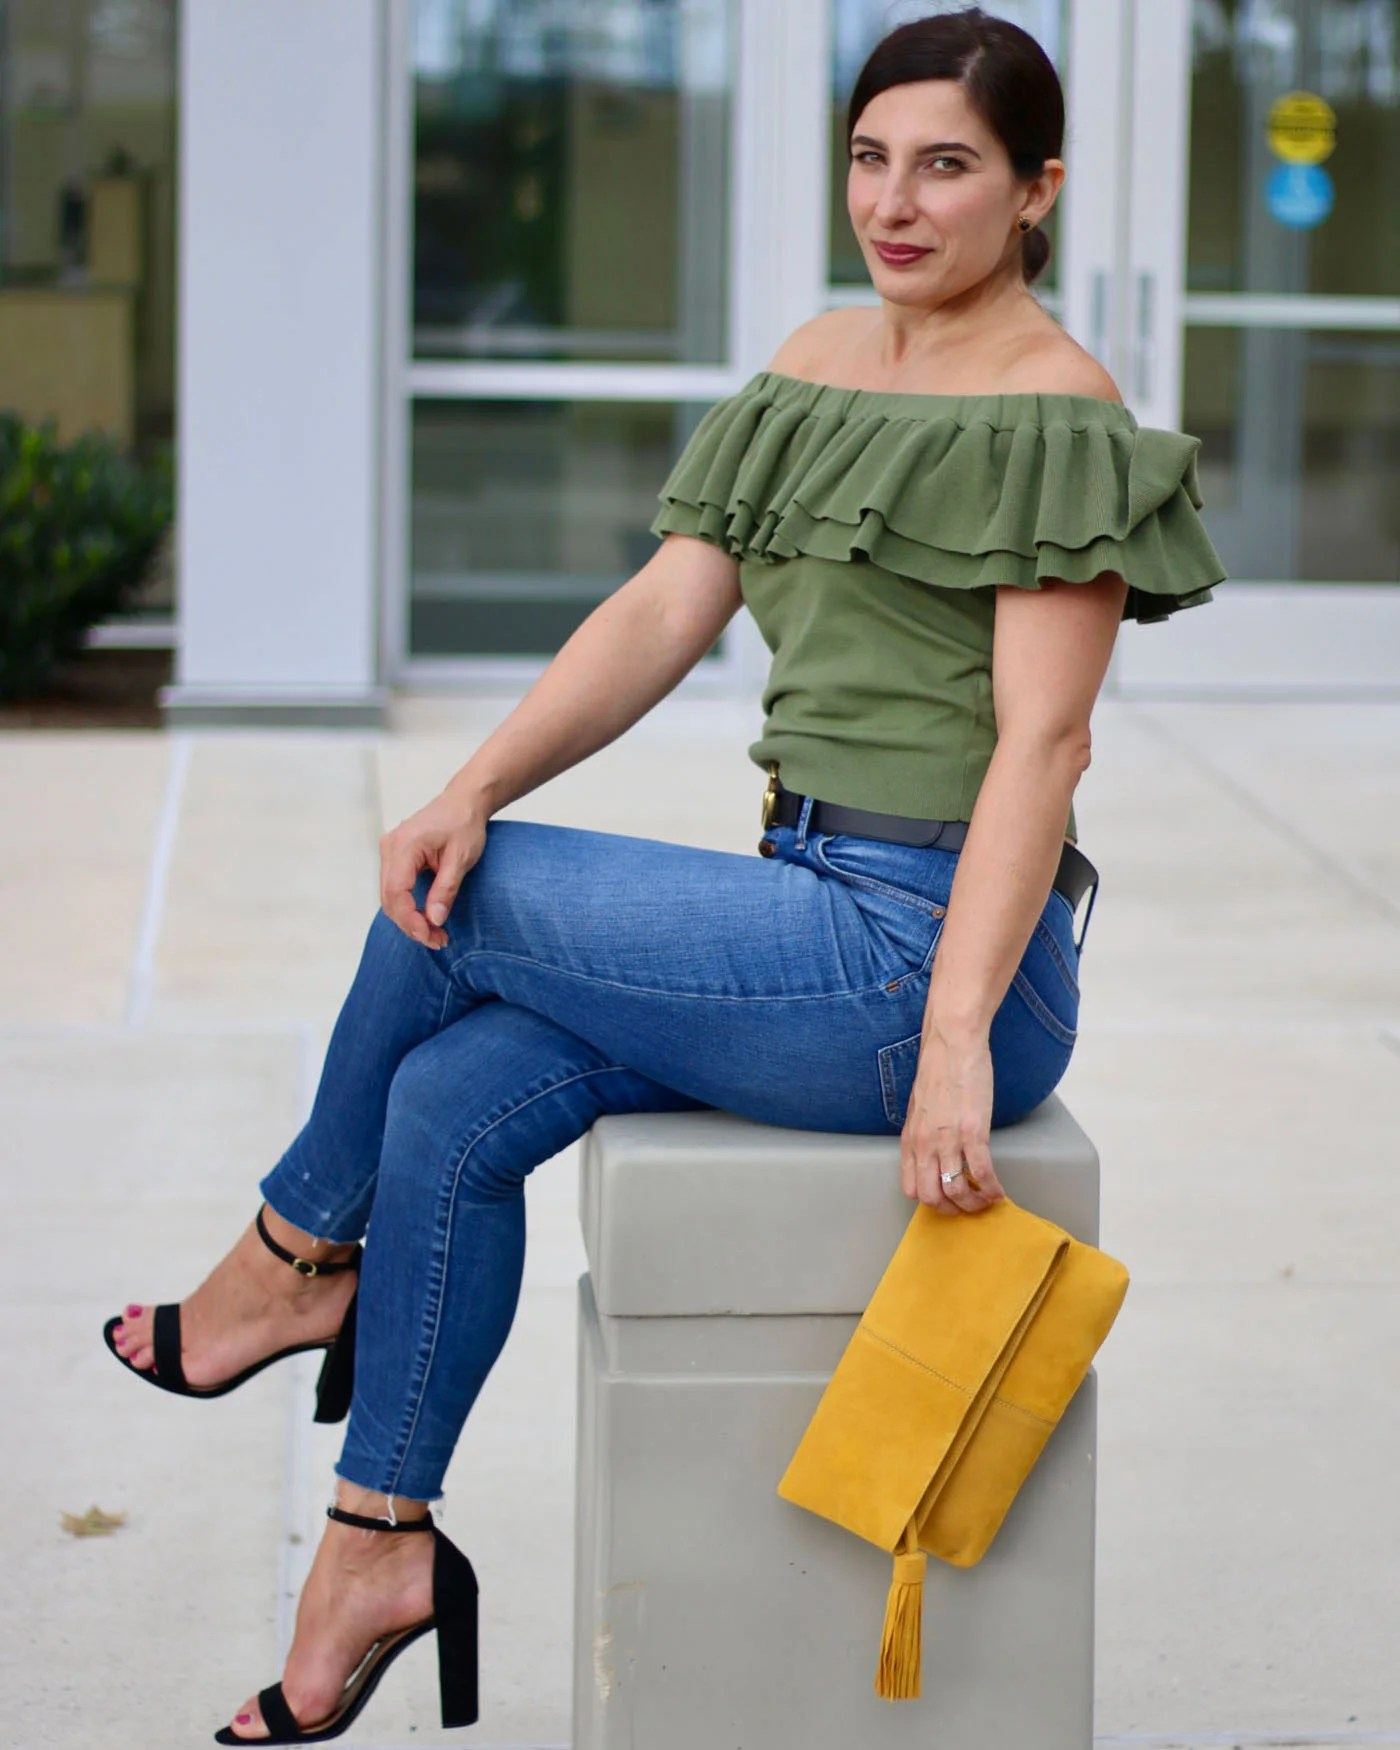 J.Crew Off The Shoulder Light Sweater, Yellow Suede Clutch, Madewell Jeans